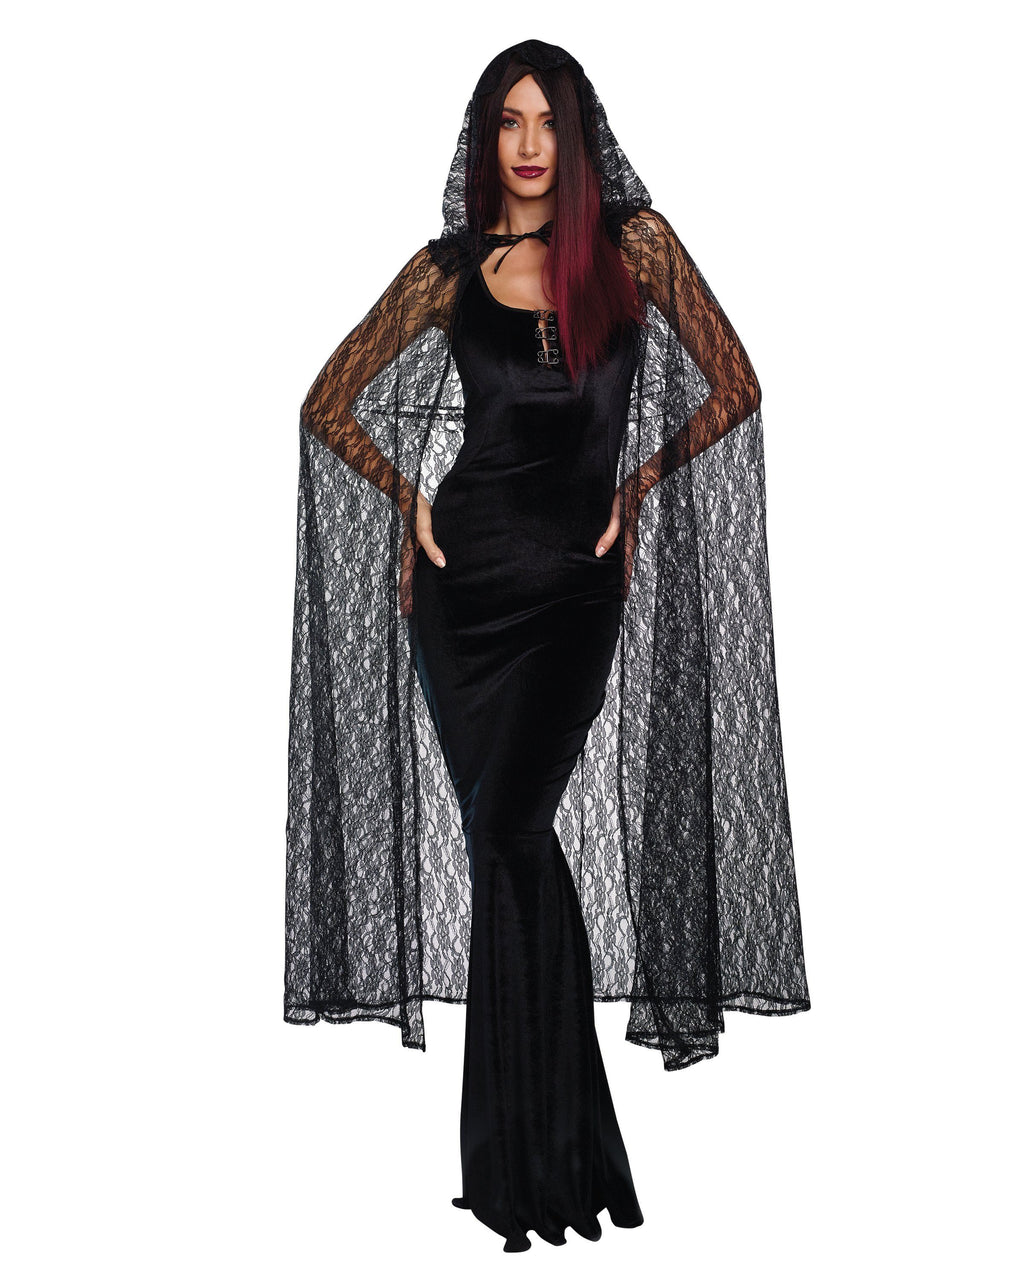 Lace Cape with Hood Costume Accessory Dreamgirl Costume One Size Black